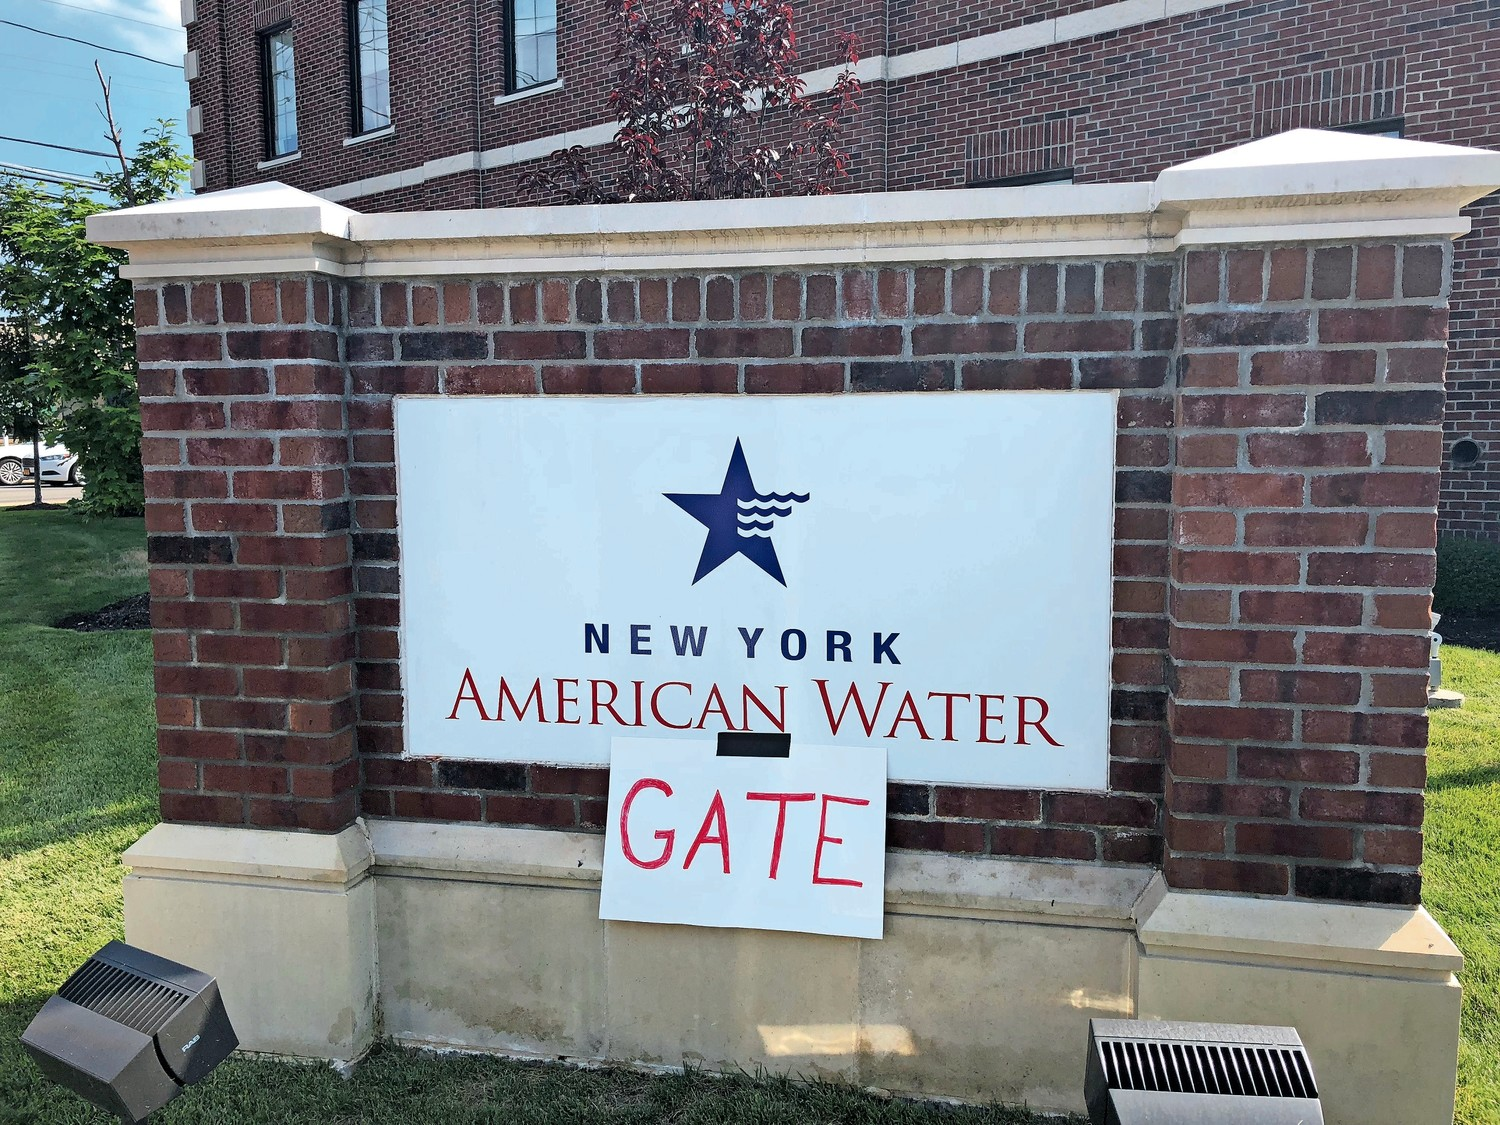 The state Public Service Commission has launched another probe into New York American Water's operations.